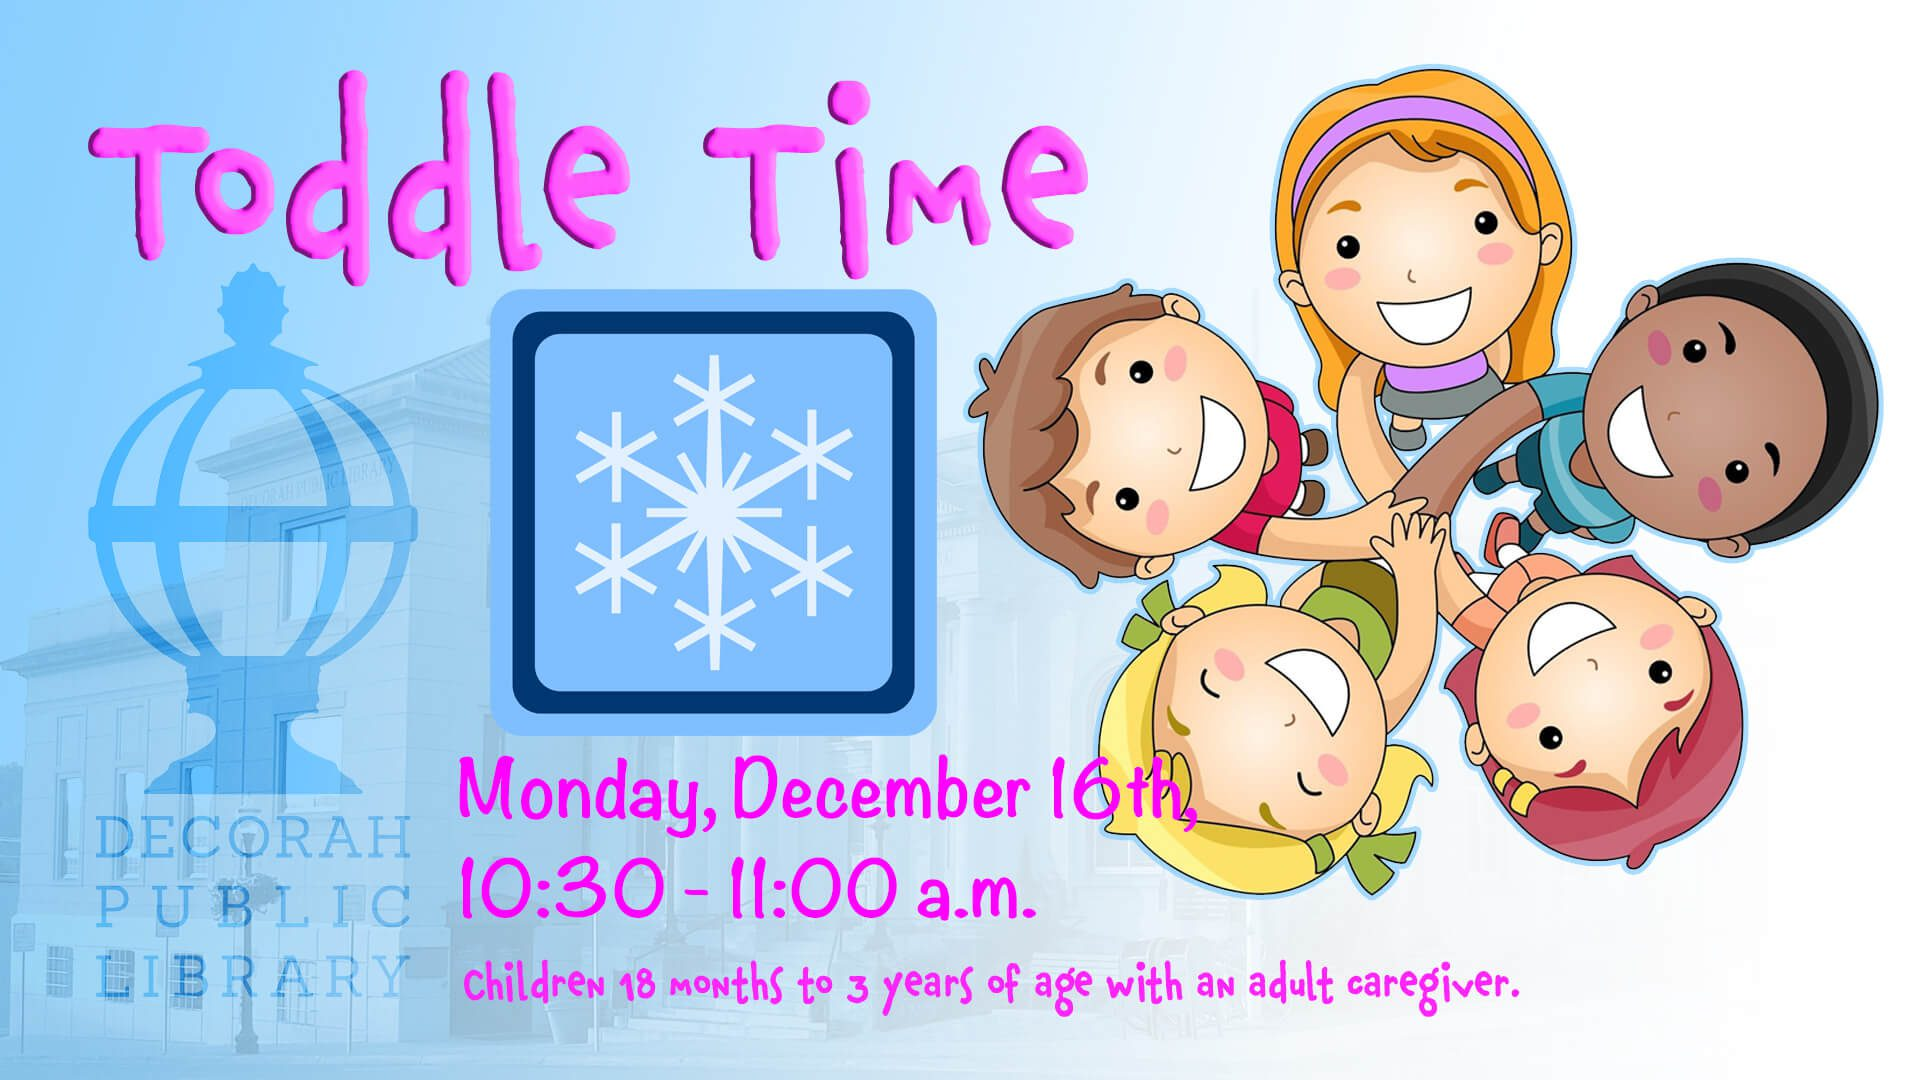 Toddle Time Dec 16